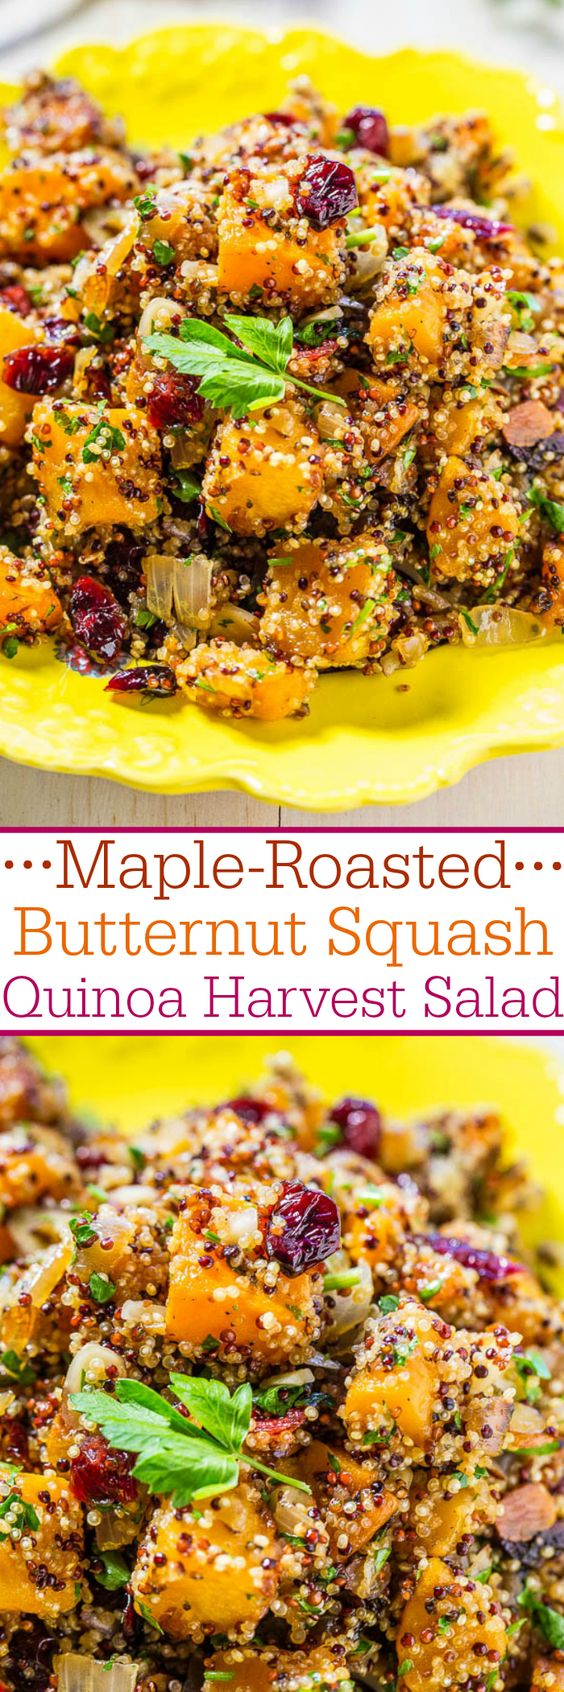 Maple-Roasted Butternut Squash Quinoa Harvest Salad Vegetable Side Dish Recipe via Averie Cooks - Easy and packed with big fall flavors!! Maple syrup, squash, and cranberries were made for each other! Love it when healthy tastes so good!!